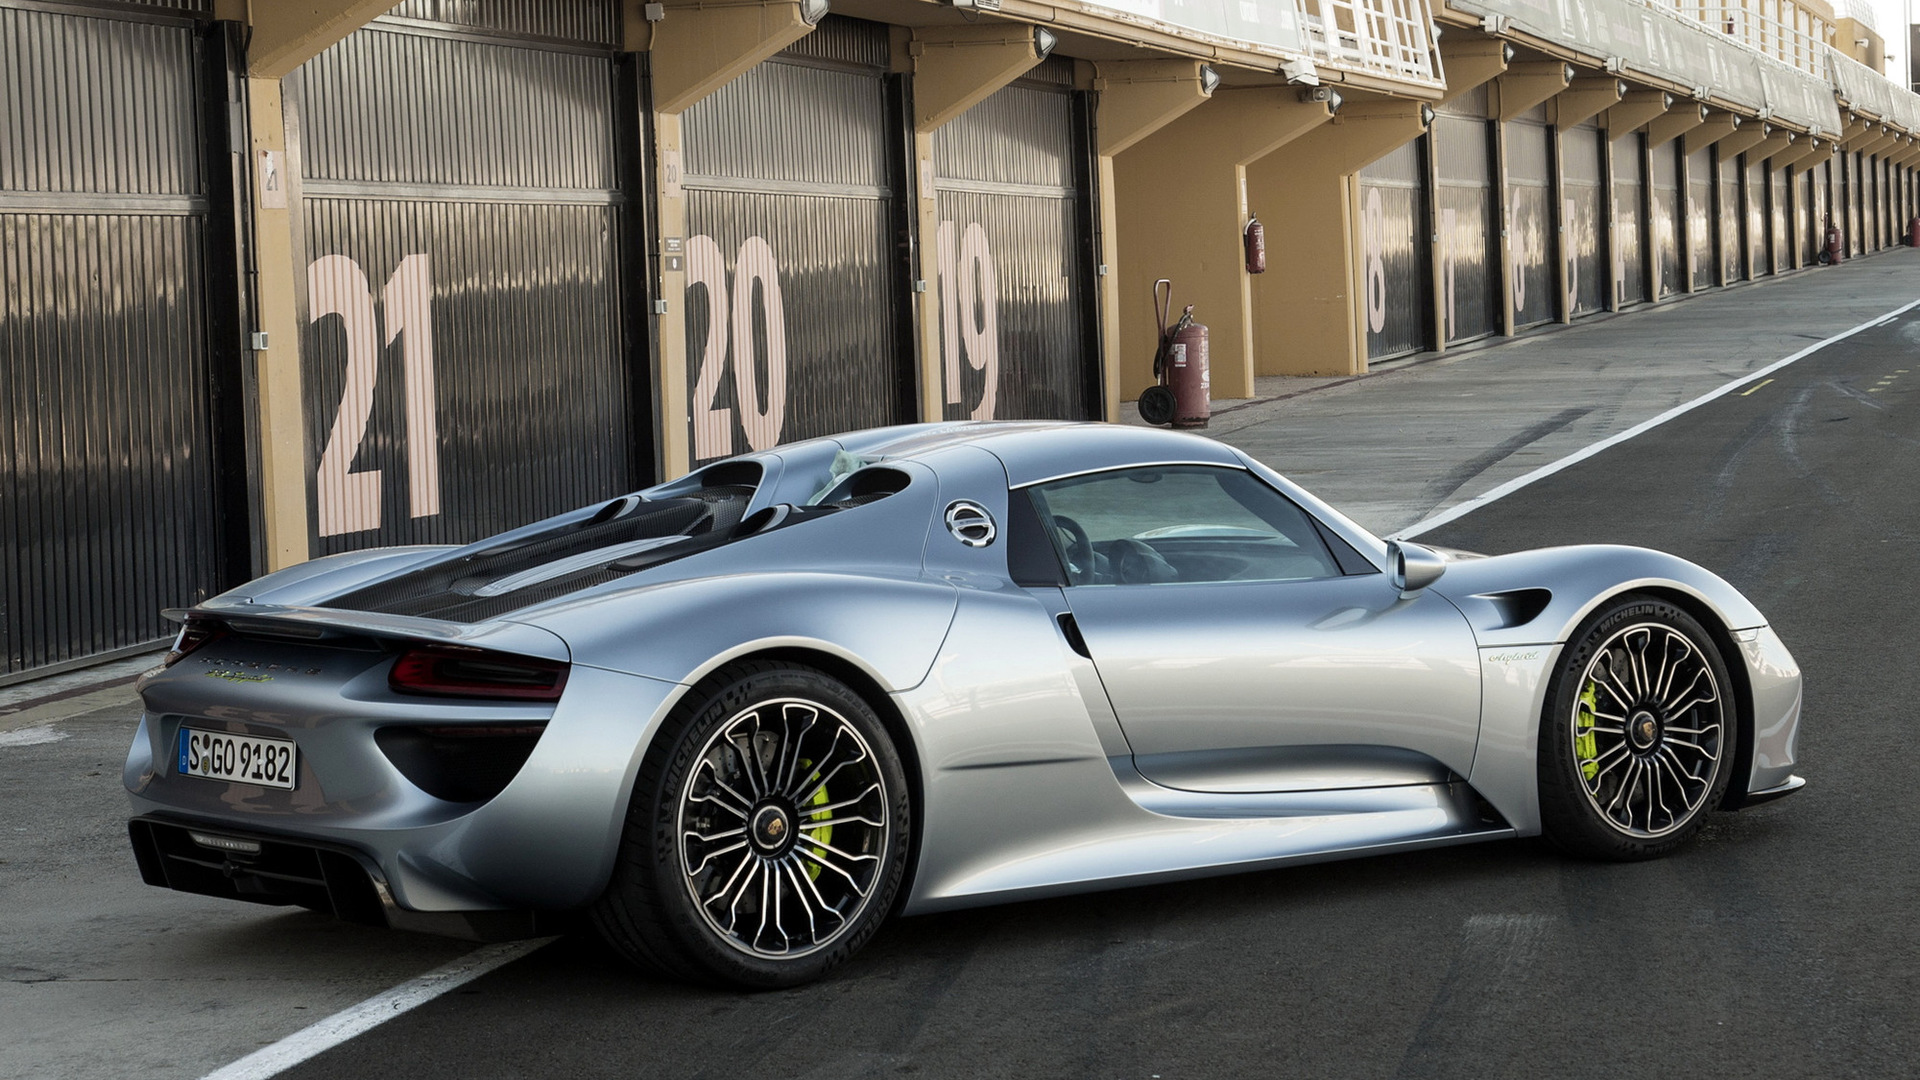 hd 169 - Porsche 918 Spyder Wallpaper